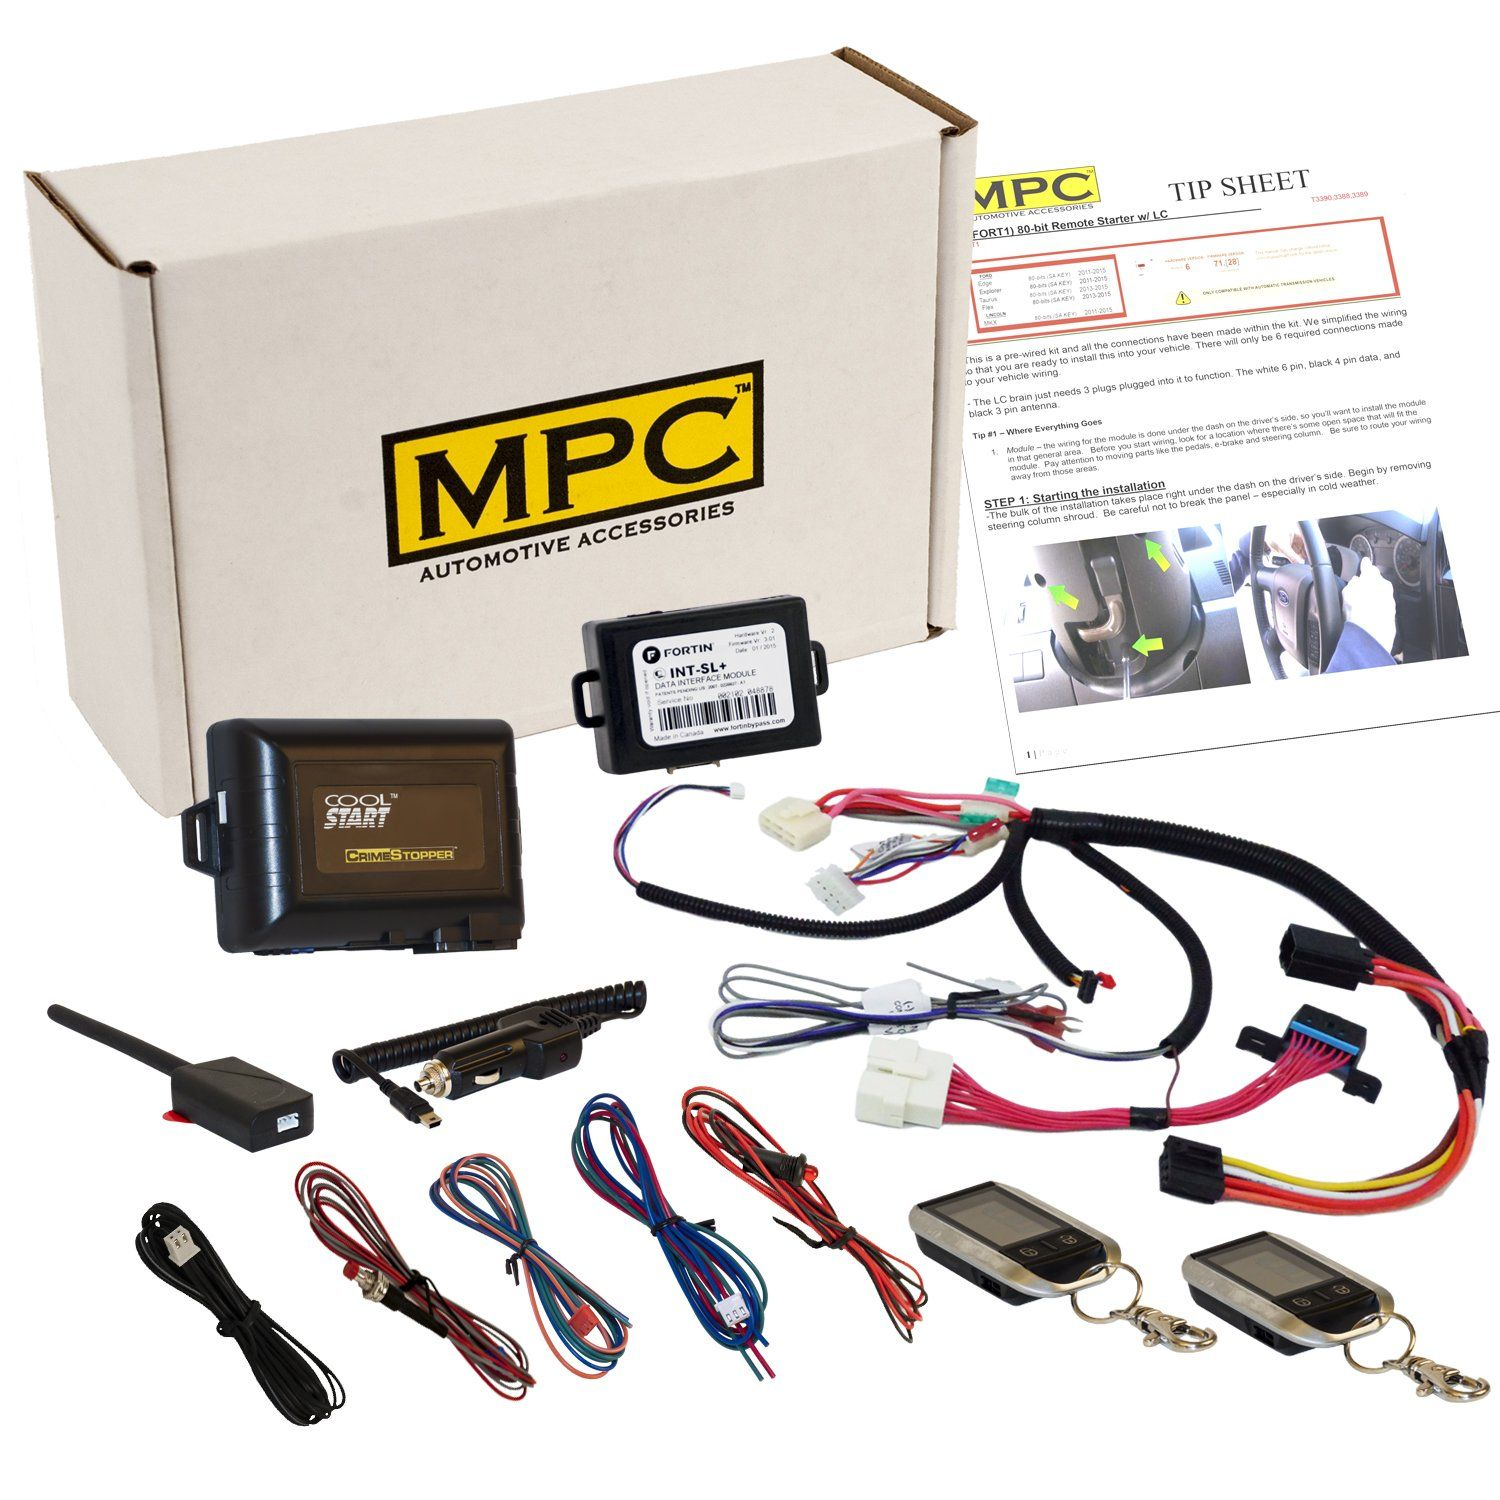 Plug & Play 2-Way Remote Start Kit For Sierra & Silverado 2003-2007 Classic Body Style - This Kit Offers the Easiest Installation Available On the Market!